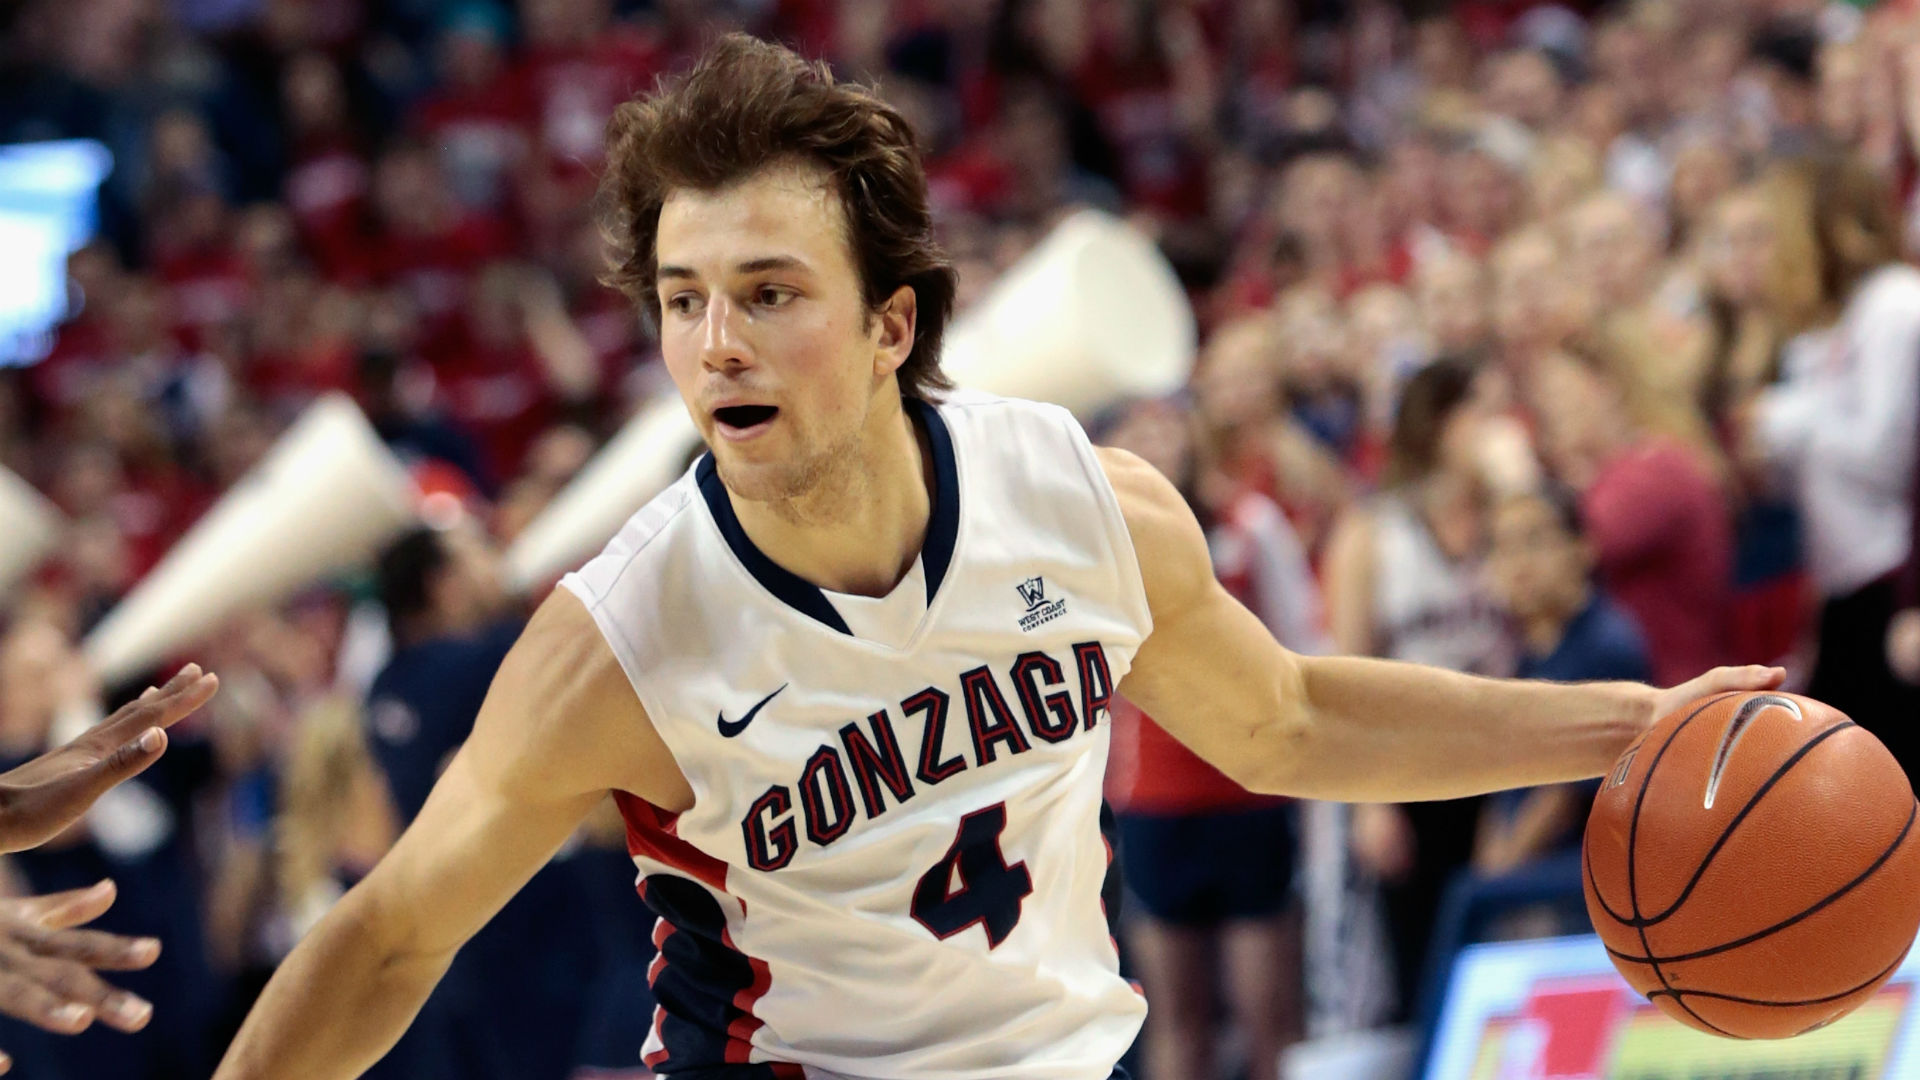 Saturday evening college basketball betting lines and picks – Gonzaga asked to cover reasonable spread